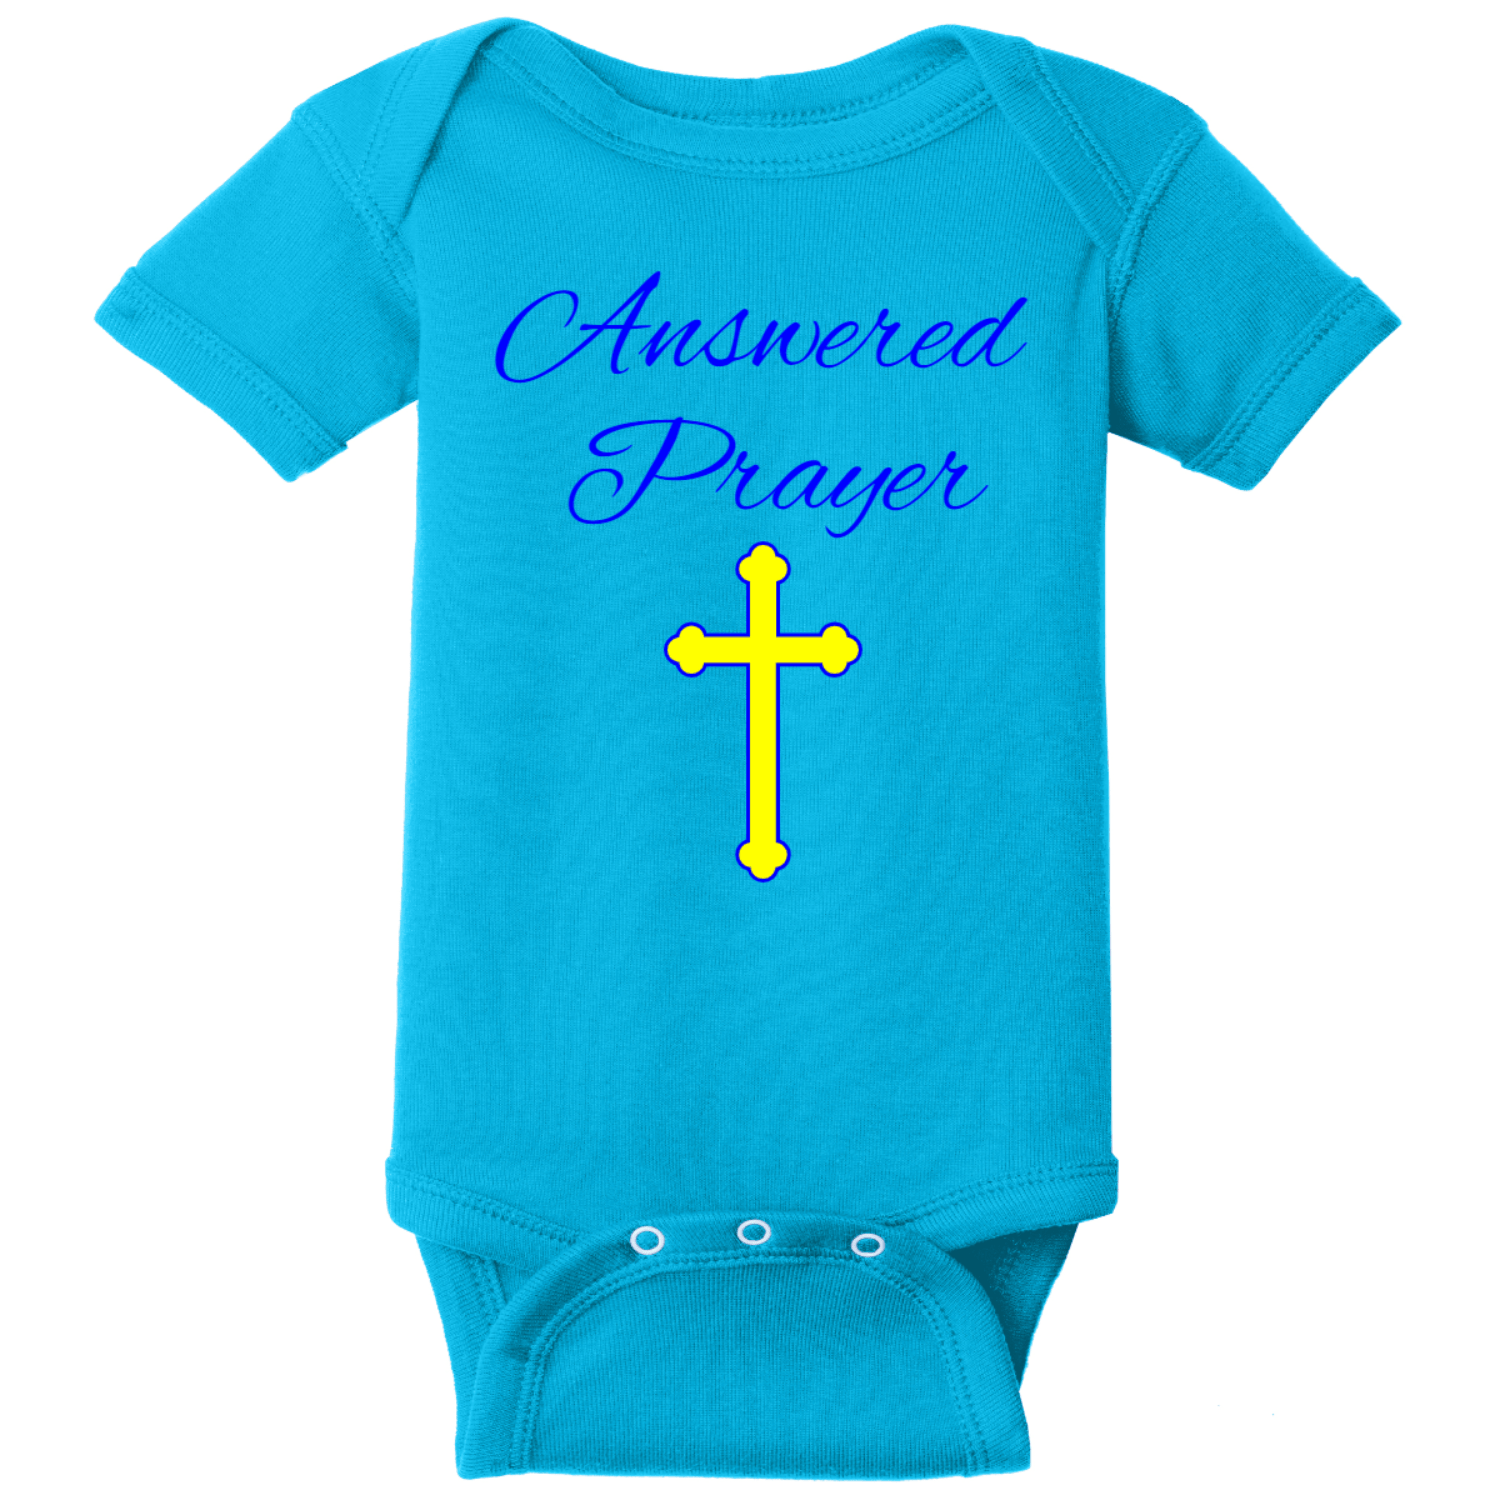 Prayer Answered Infant Onsie Turquoise Rabbit Skins Infant Short Sleeve Infant Rib Bodysuit RS4400